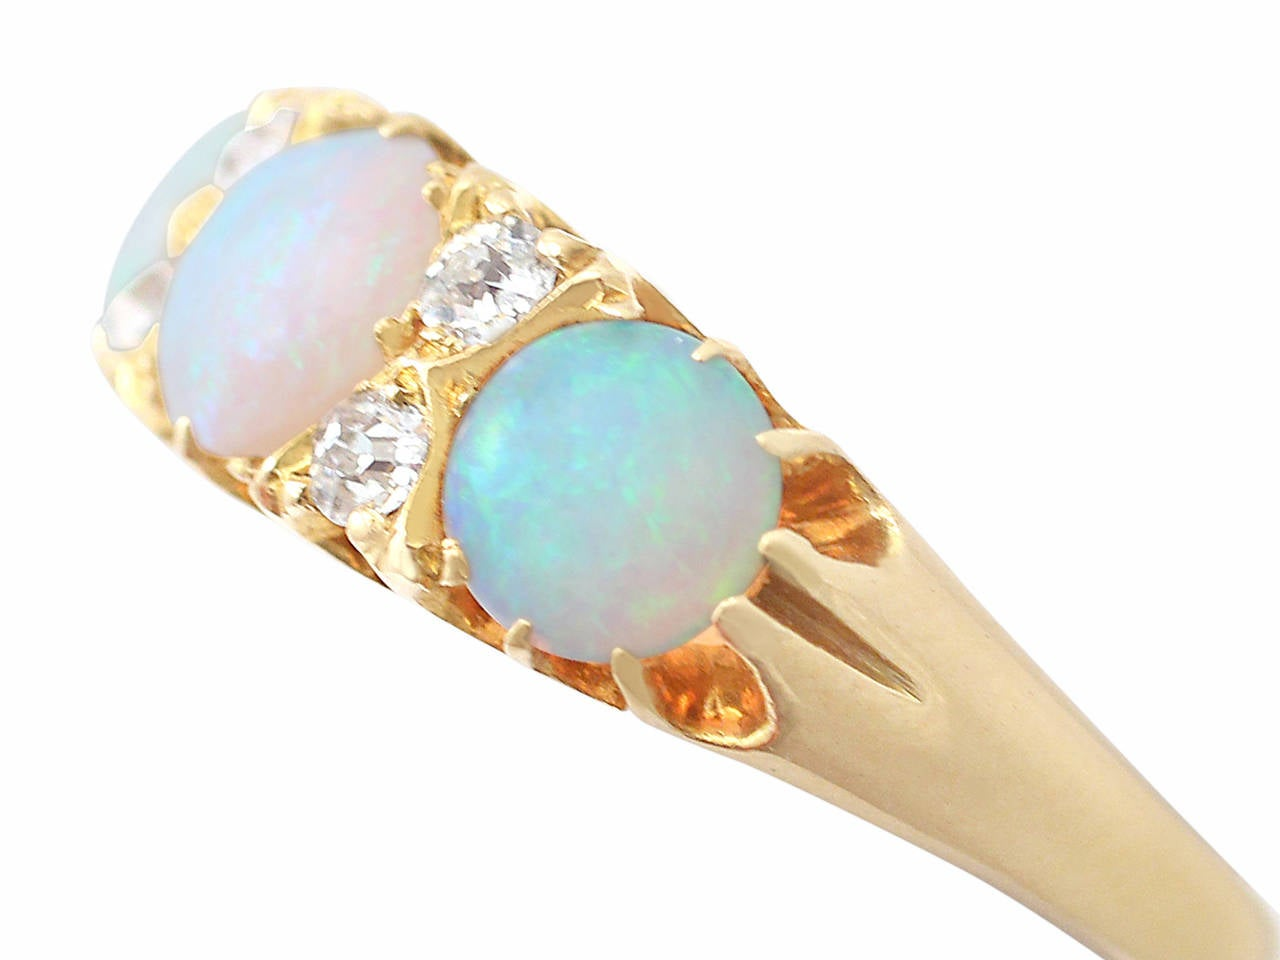 Antique Victorian Opal 0.20 Carat Diamond Gold Dress Ring In Excellent Condition For Sale In Jesmond, GB